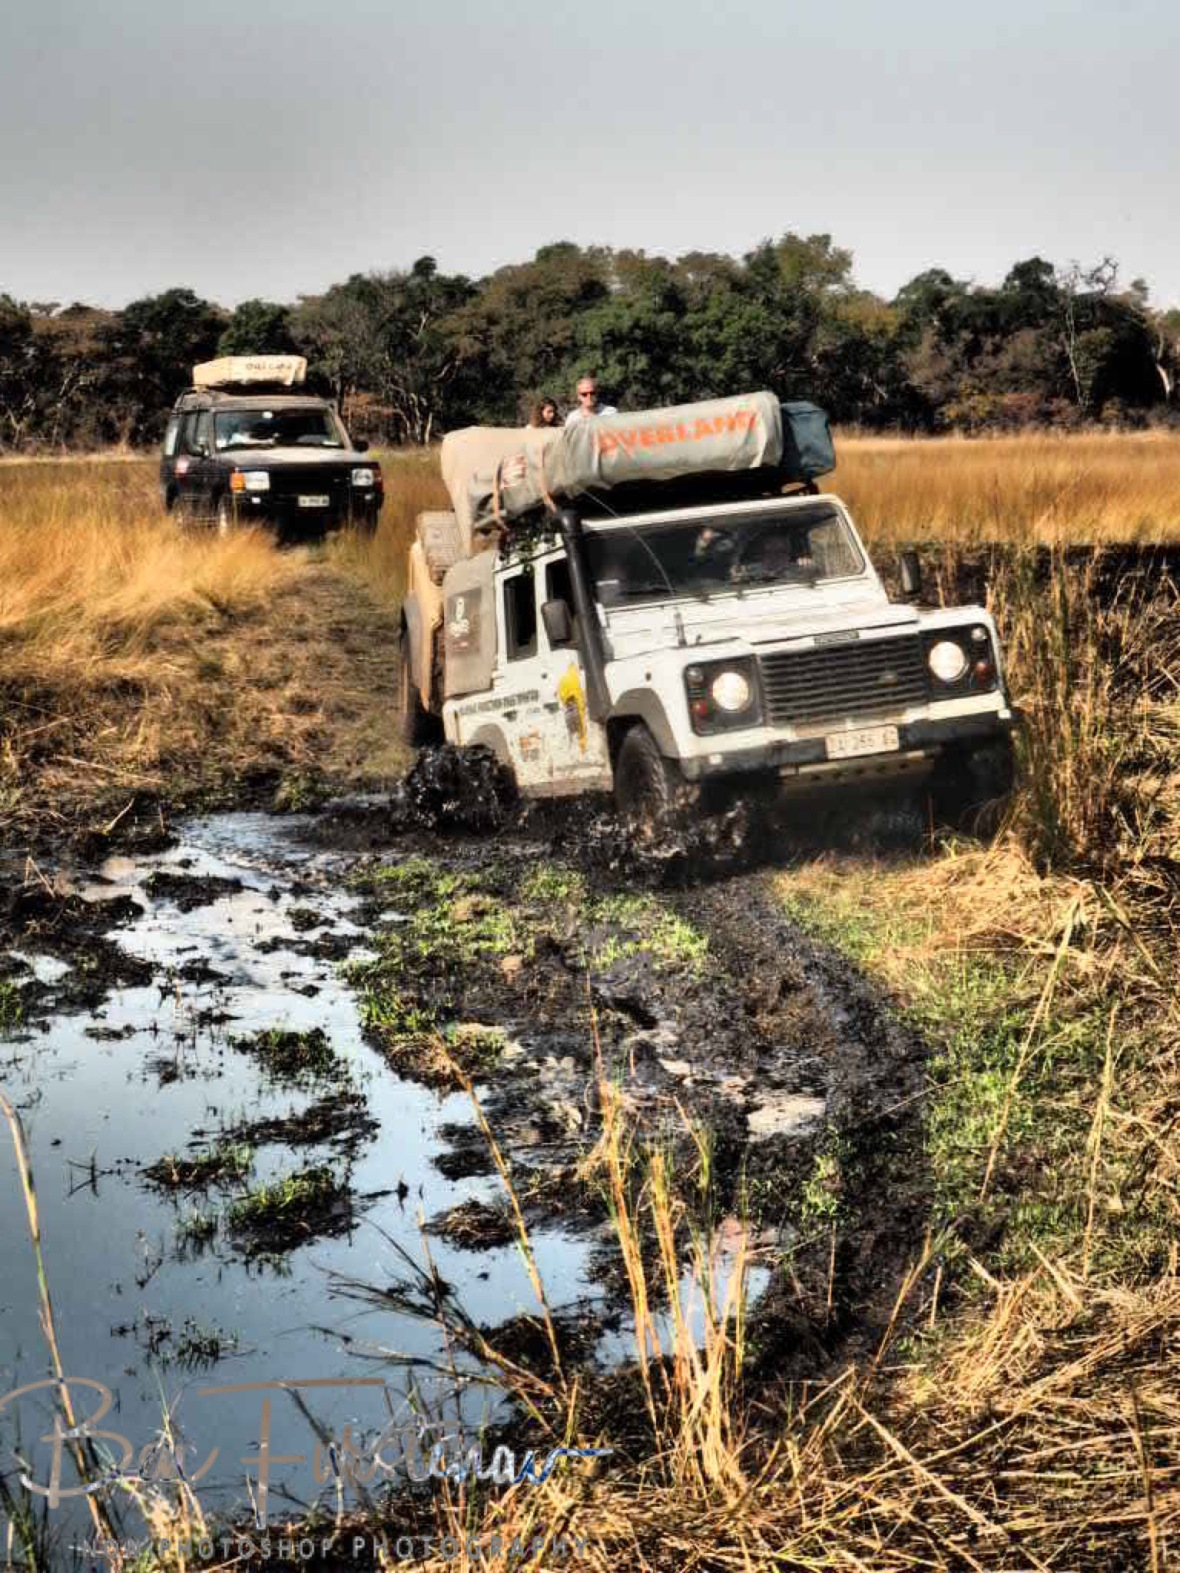 Claudio tackling a swampy area in Liuwa Plains National Park, Zambia